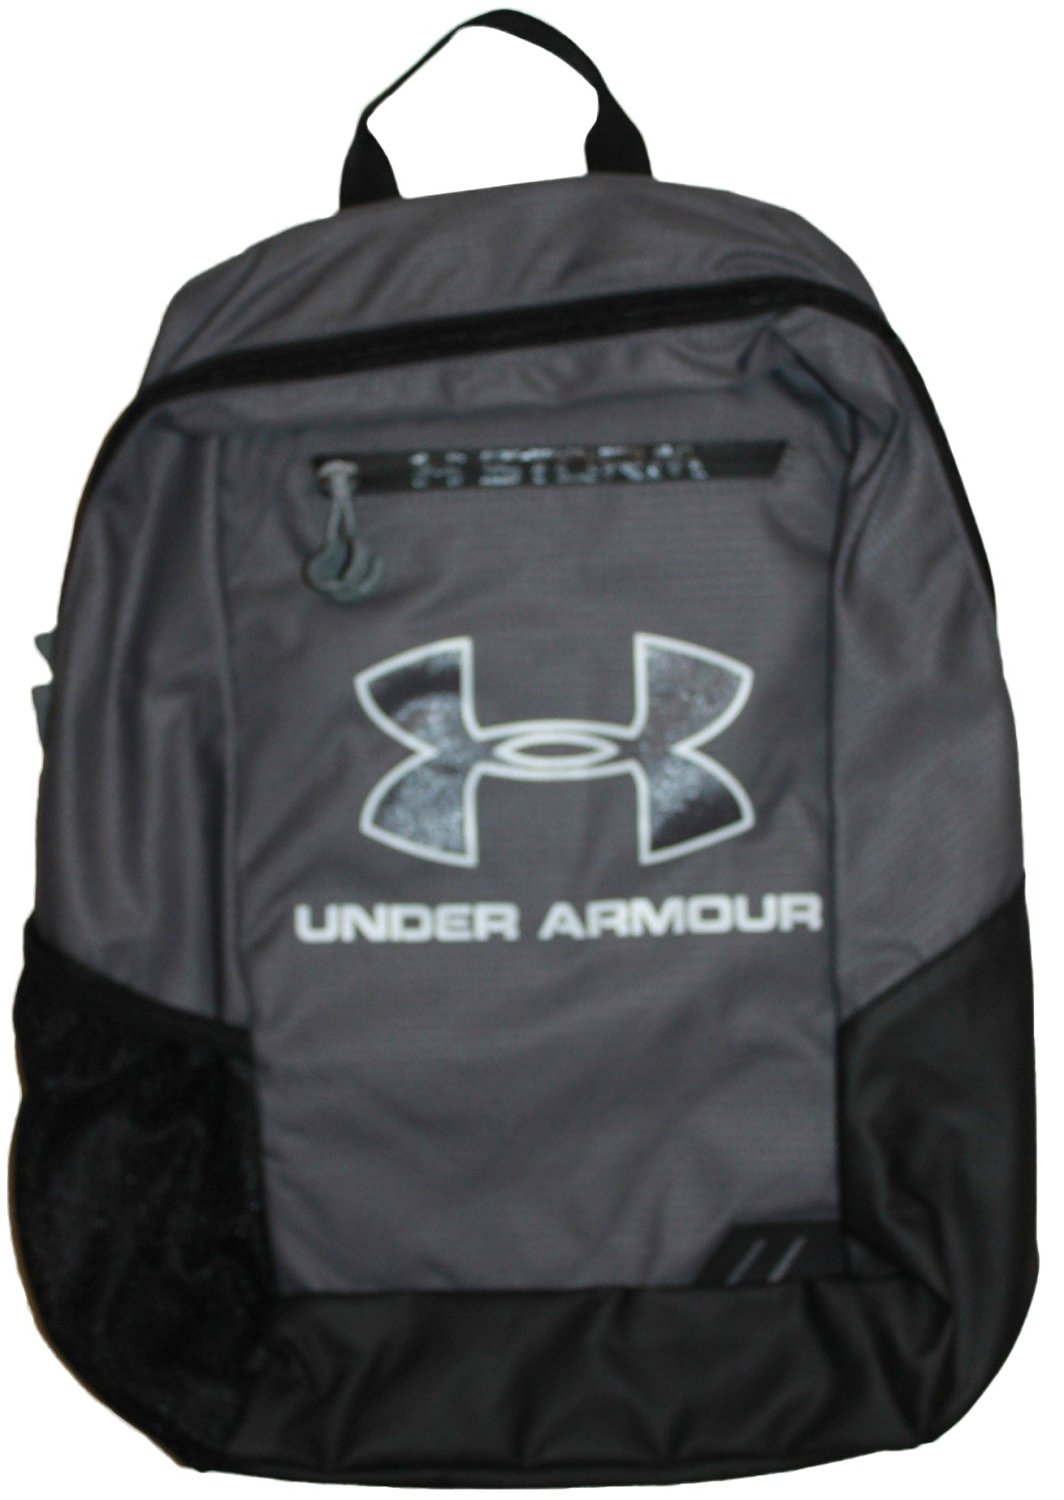 96fbb6c364ce Get Quotations · Under Armour Unisex Maniac Backpack